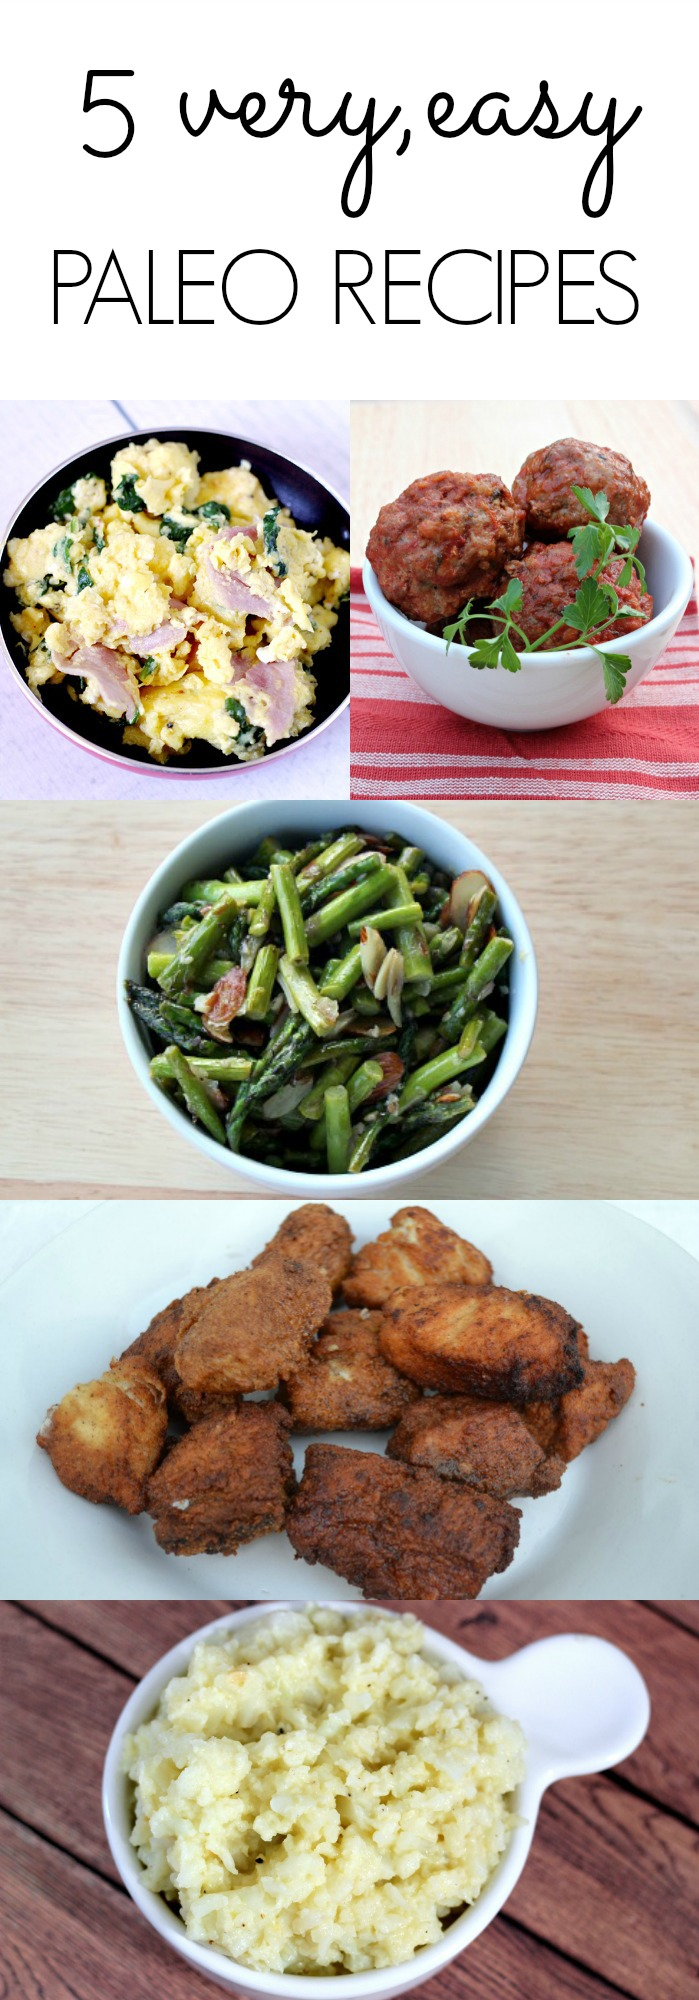 5 Easy Paleo Recipes